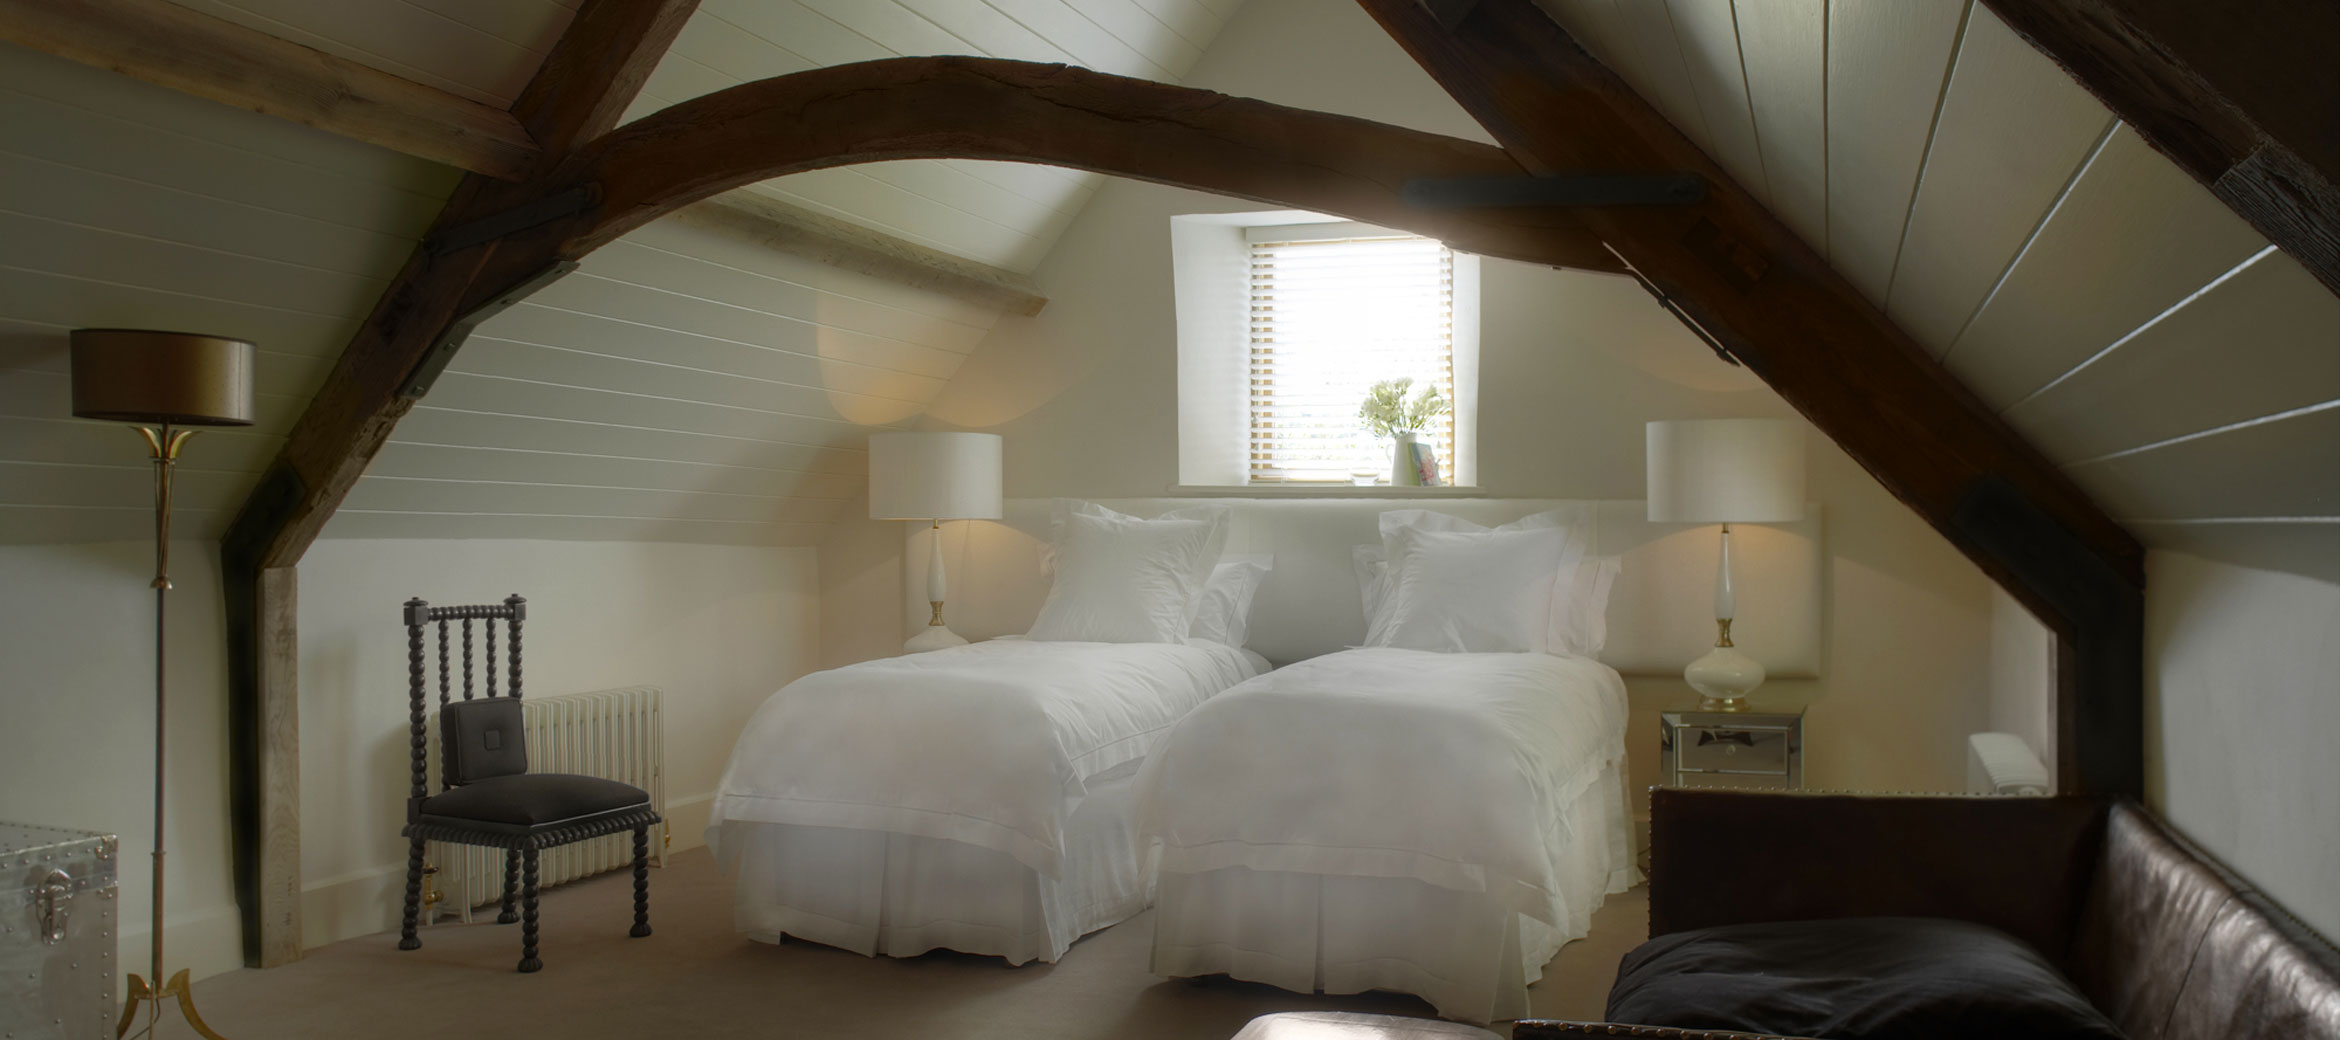 Temple-Guiting-Barn-Twin-Bedroom